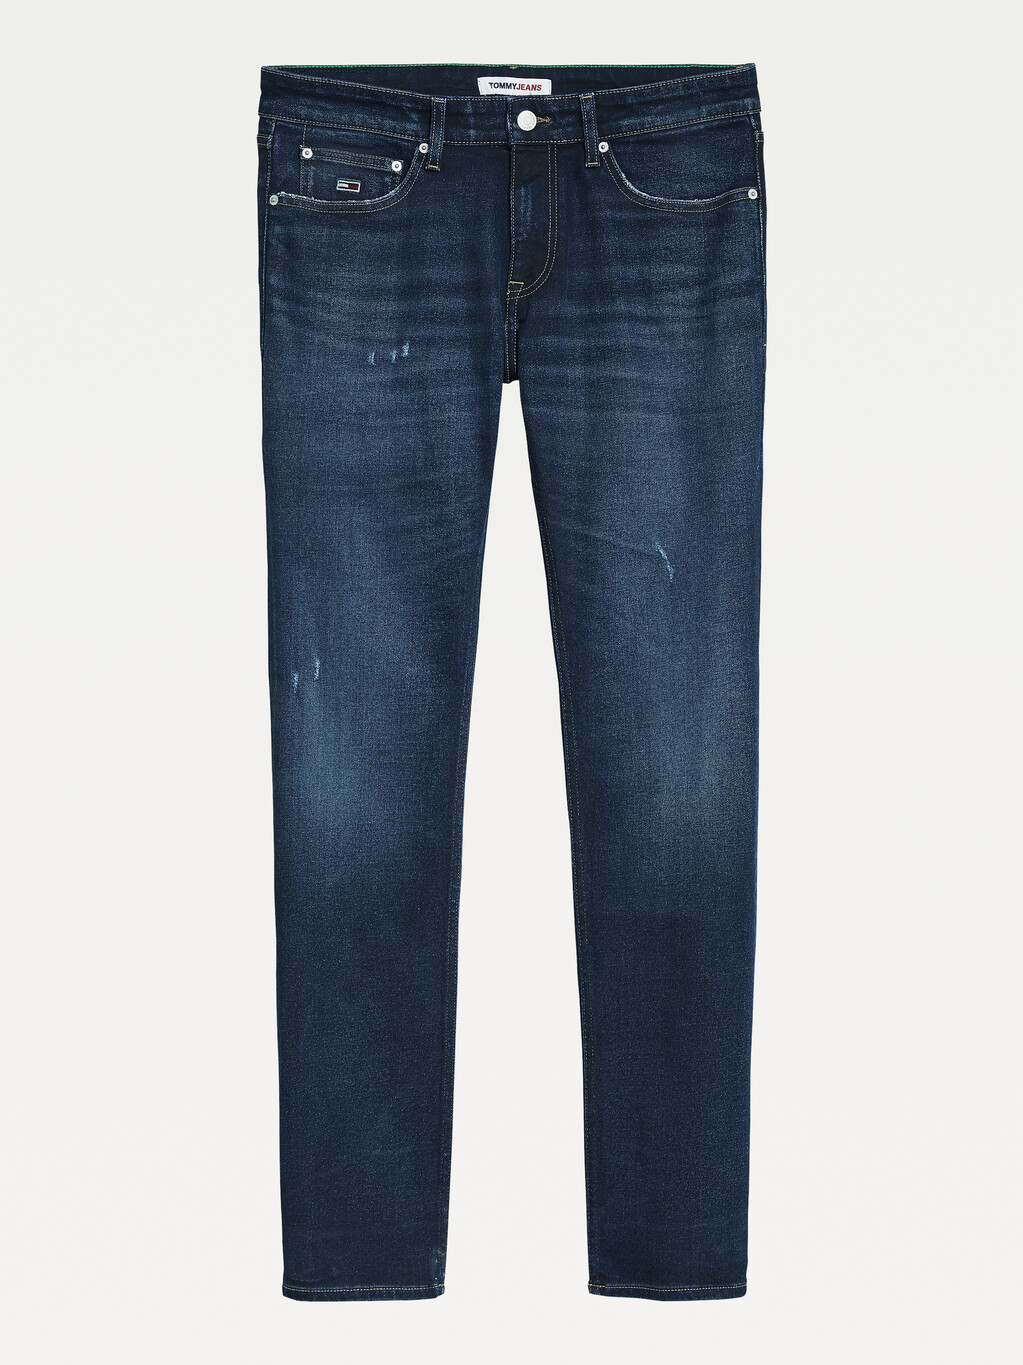 Scanton Slim Distressed Faded Jeans